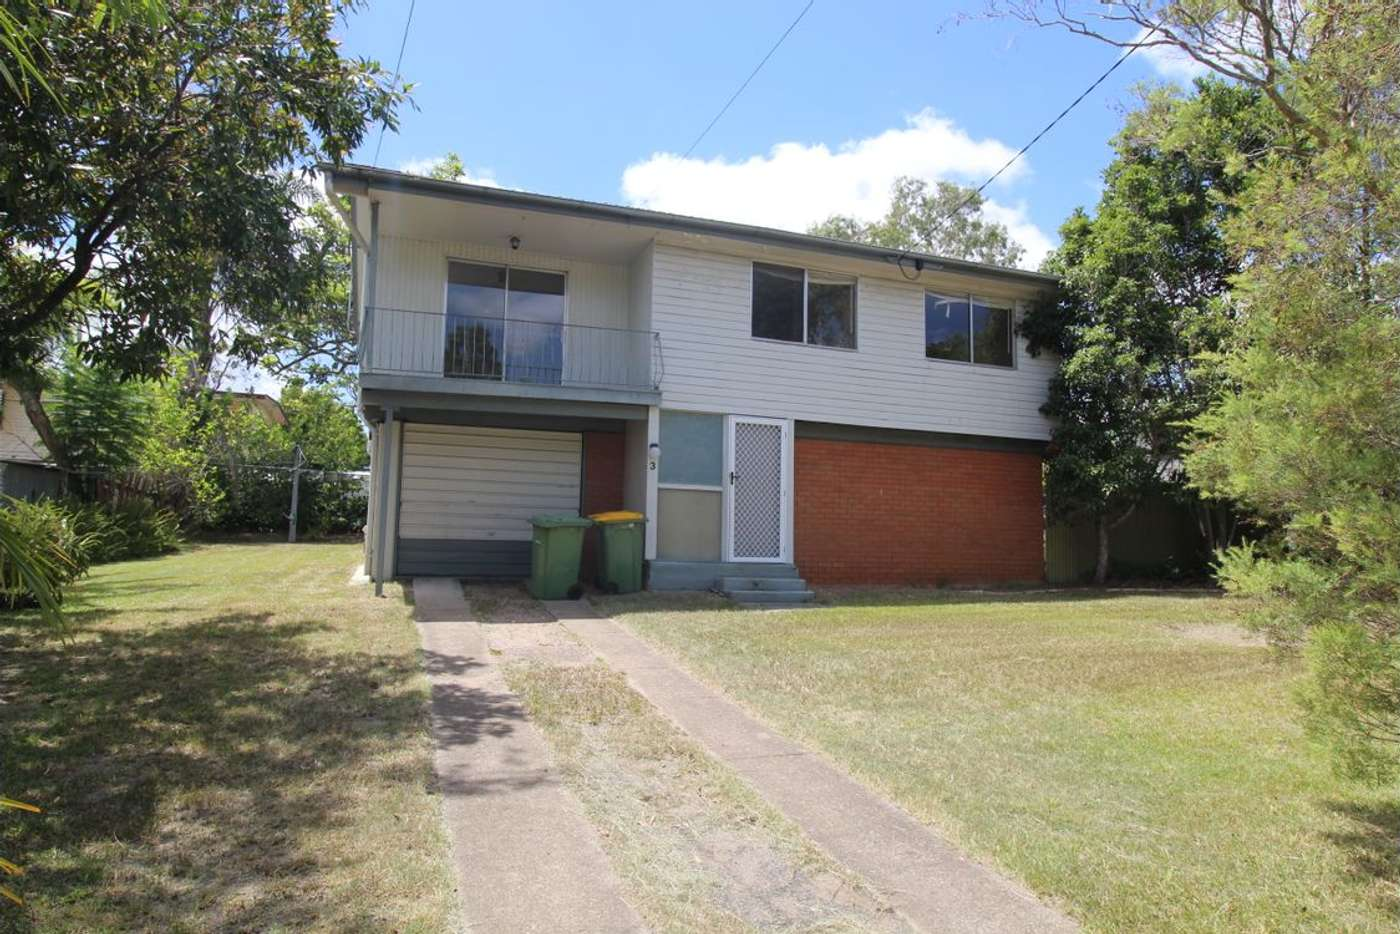 Main view of Homely house listing, 3 Candish Street, Woodridge QLD 4114